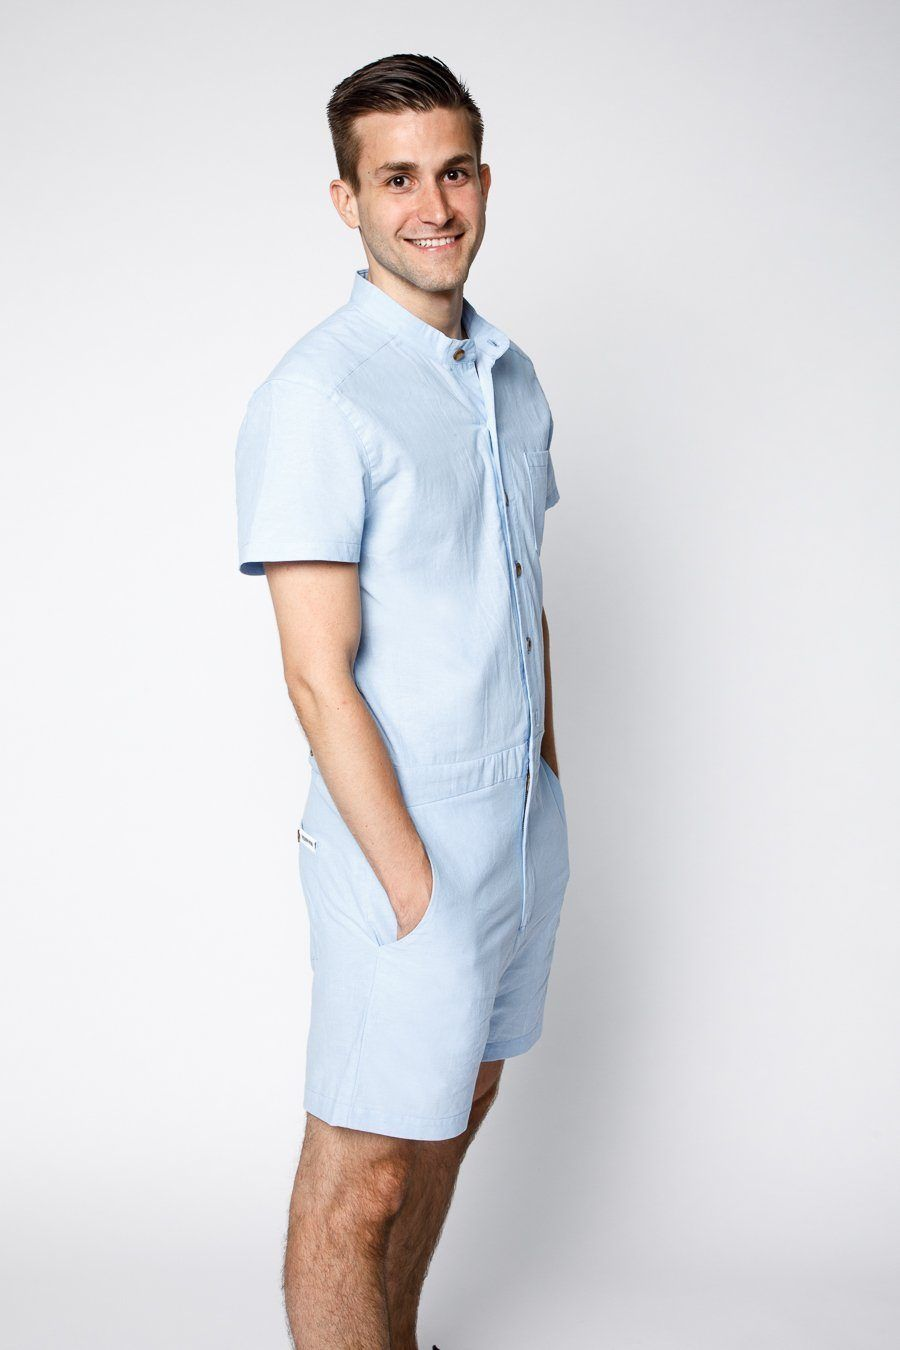 eceda1604f37 Product shot of model wearing Light blue chambray male romper by RompHim  (side view)